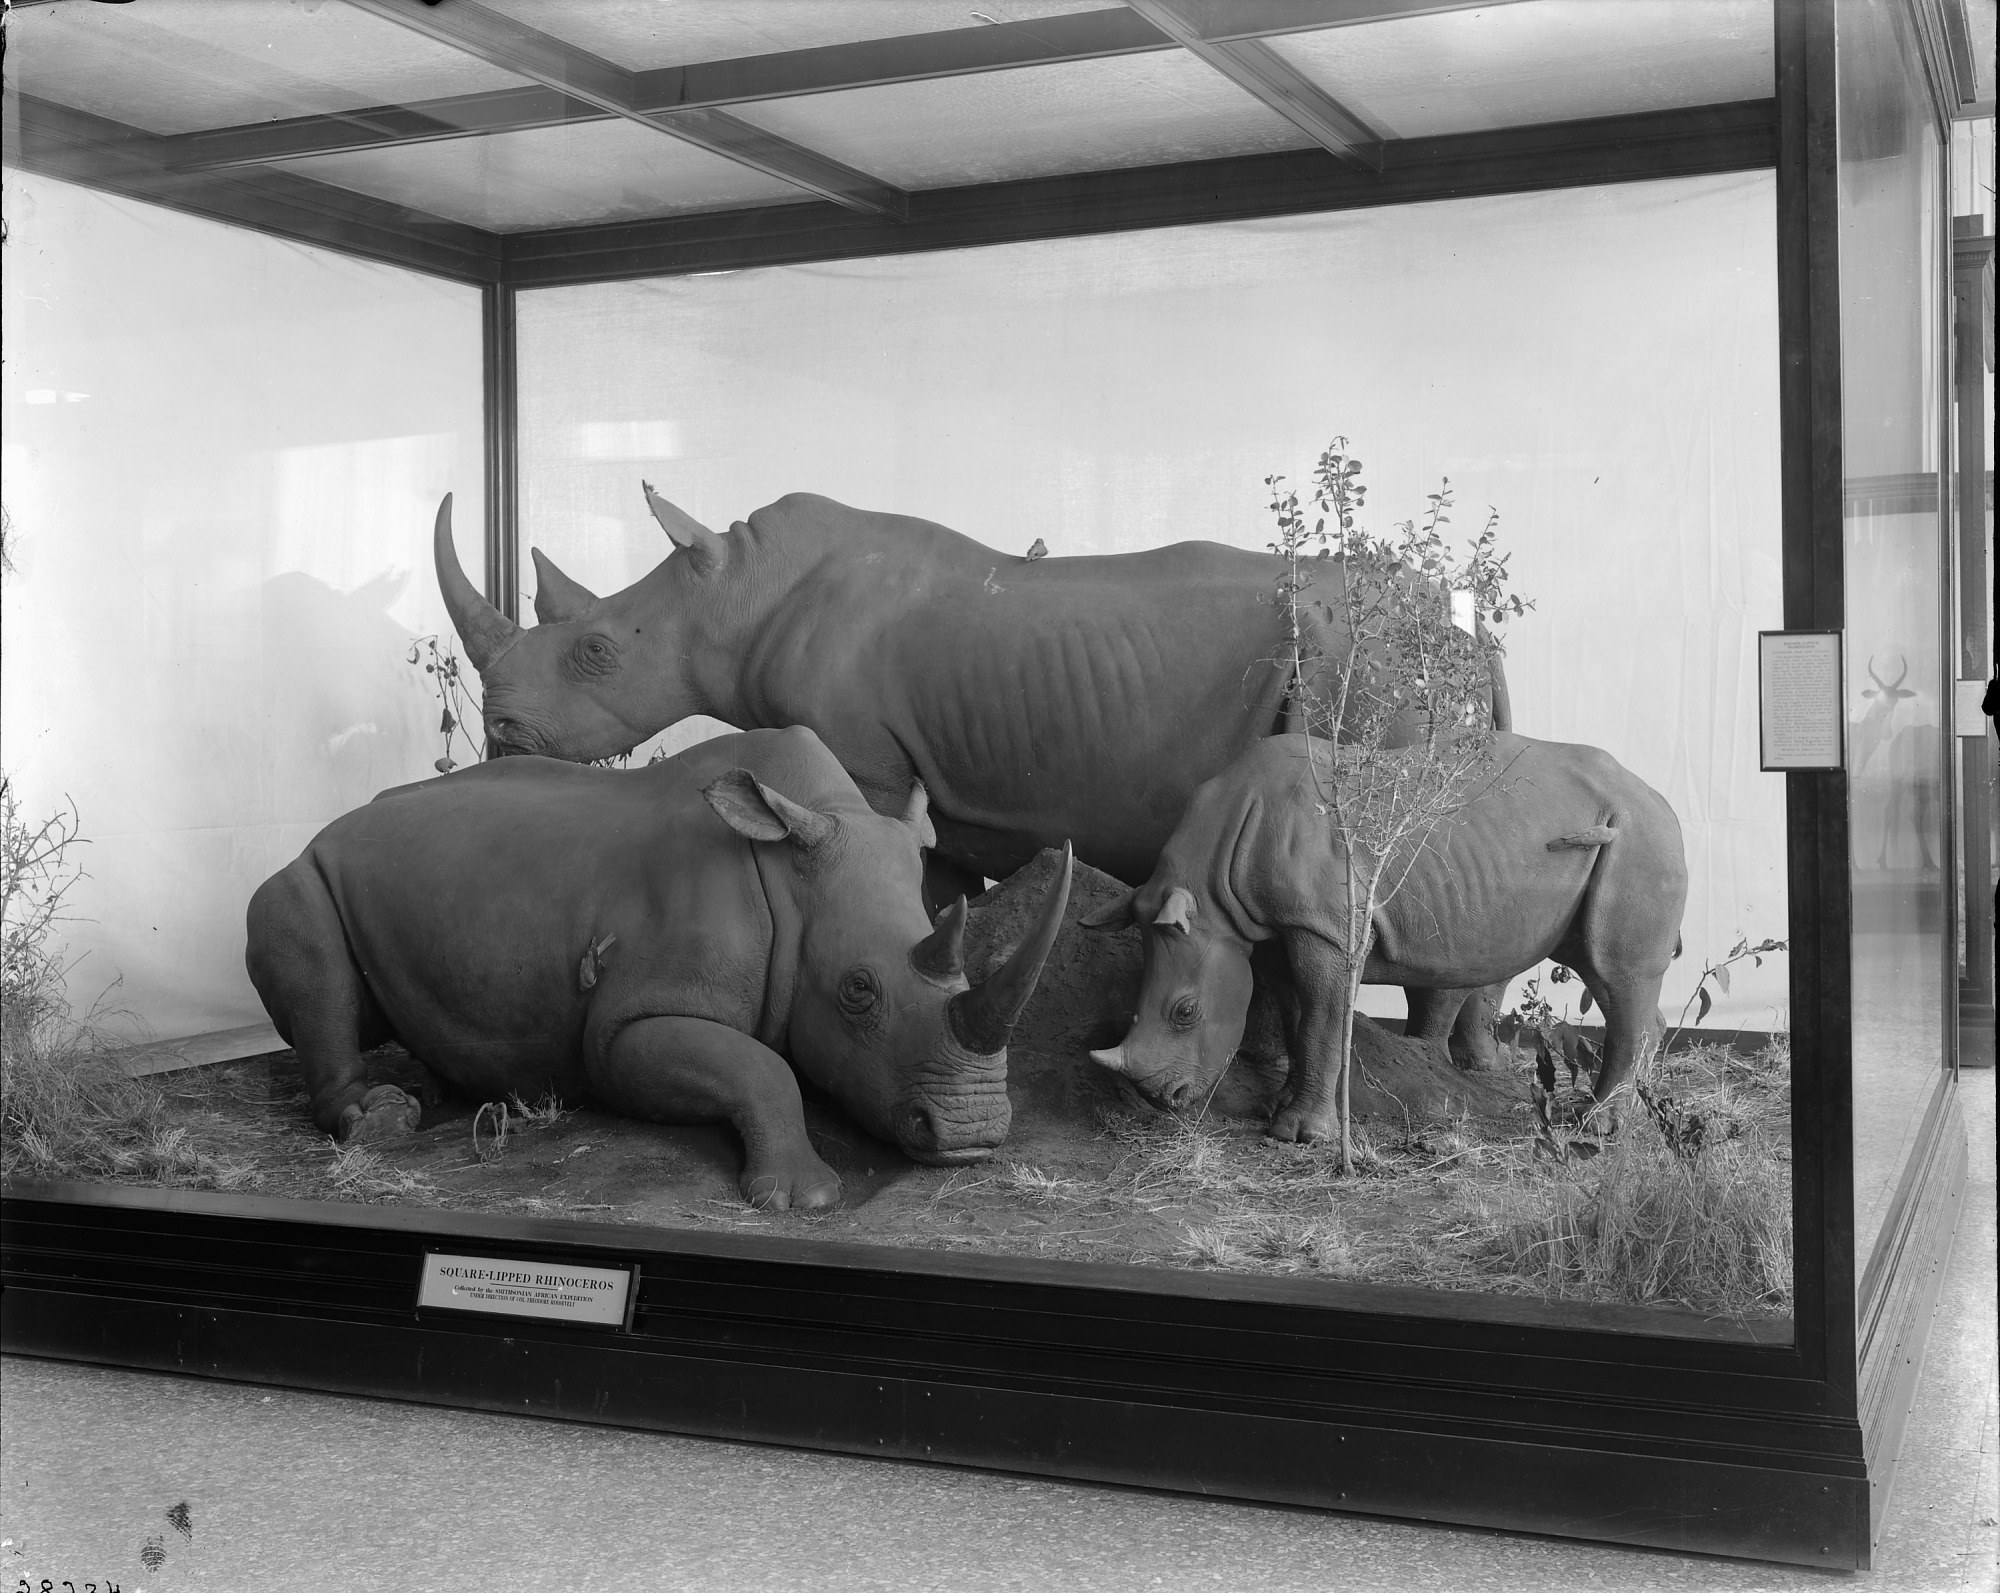 Hall of Mammals, Square-lipped Rhinoceros, USNM